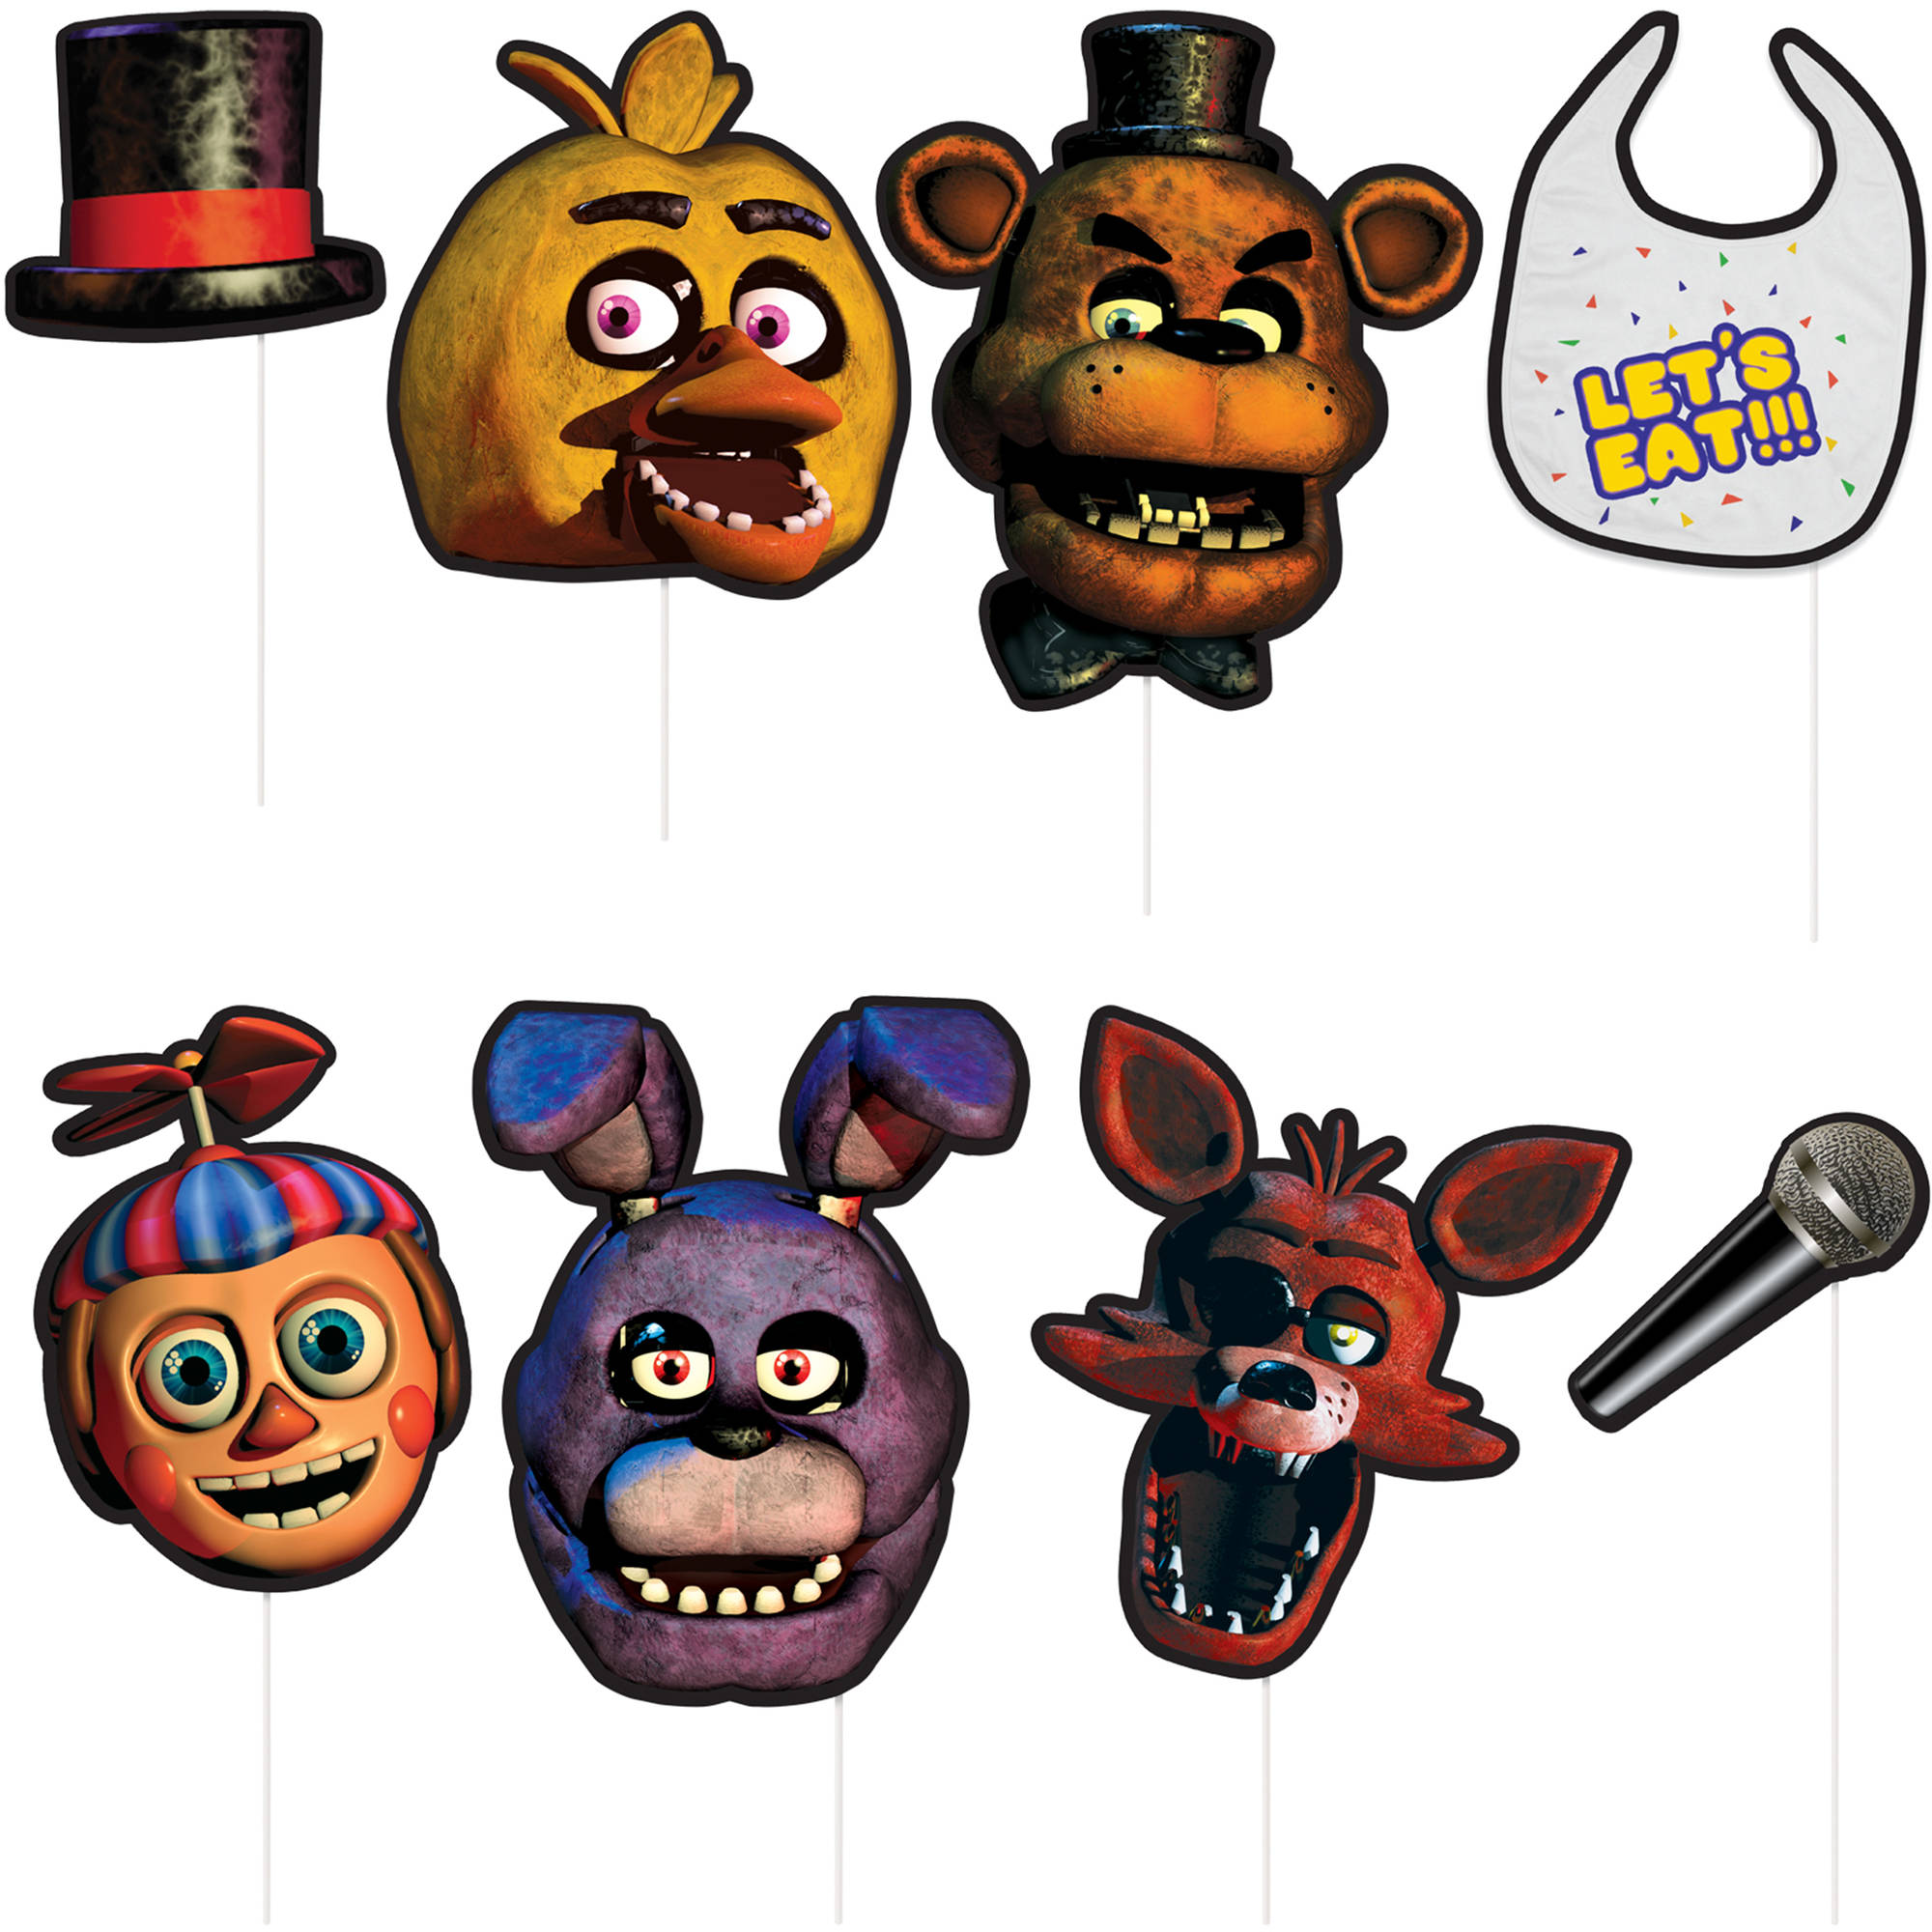 Plastic Tablecover Birthday Party Supplies Five Nights at Freddy/'s Let/'s Eat